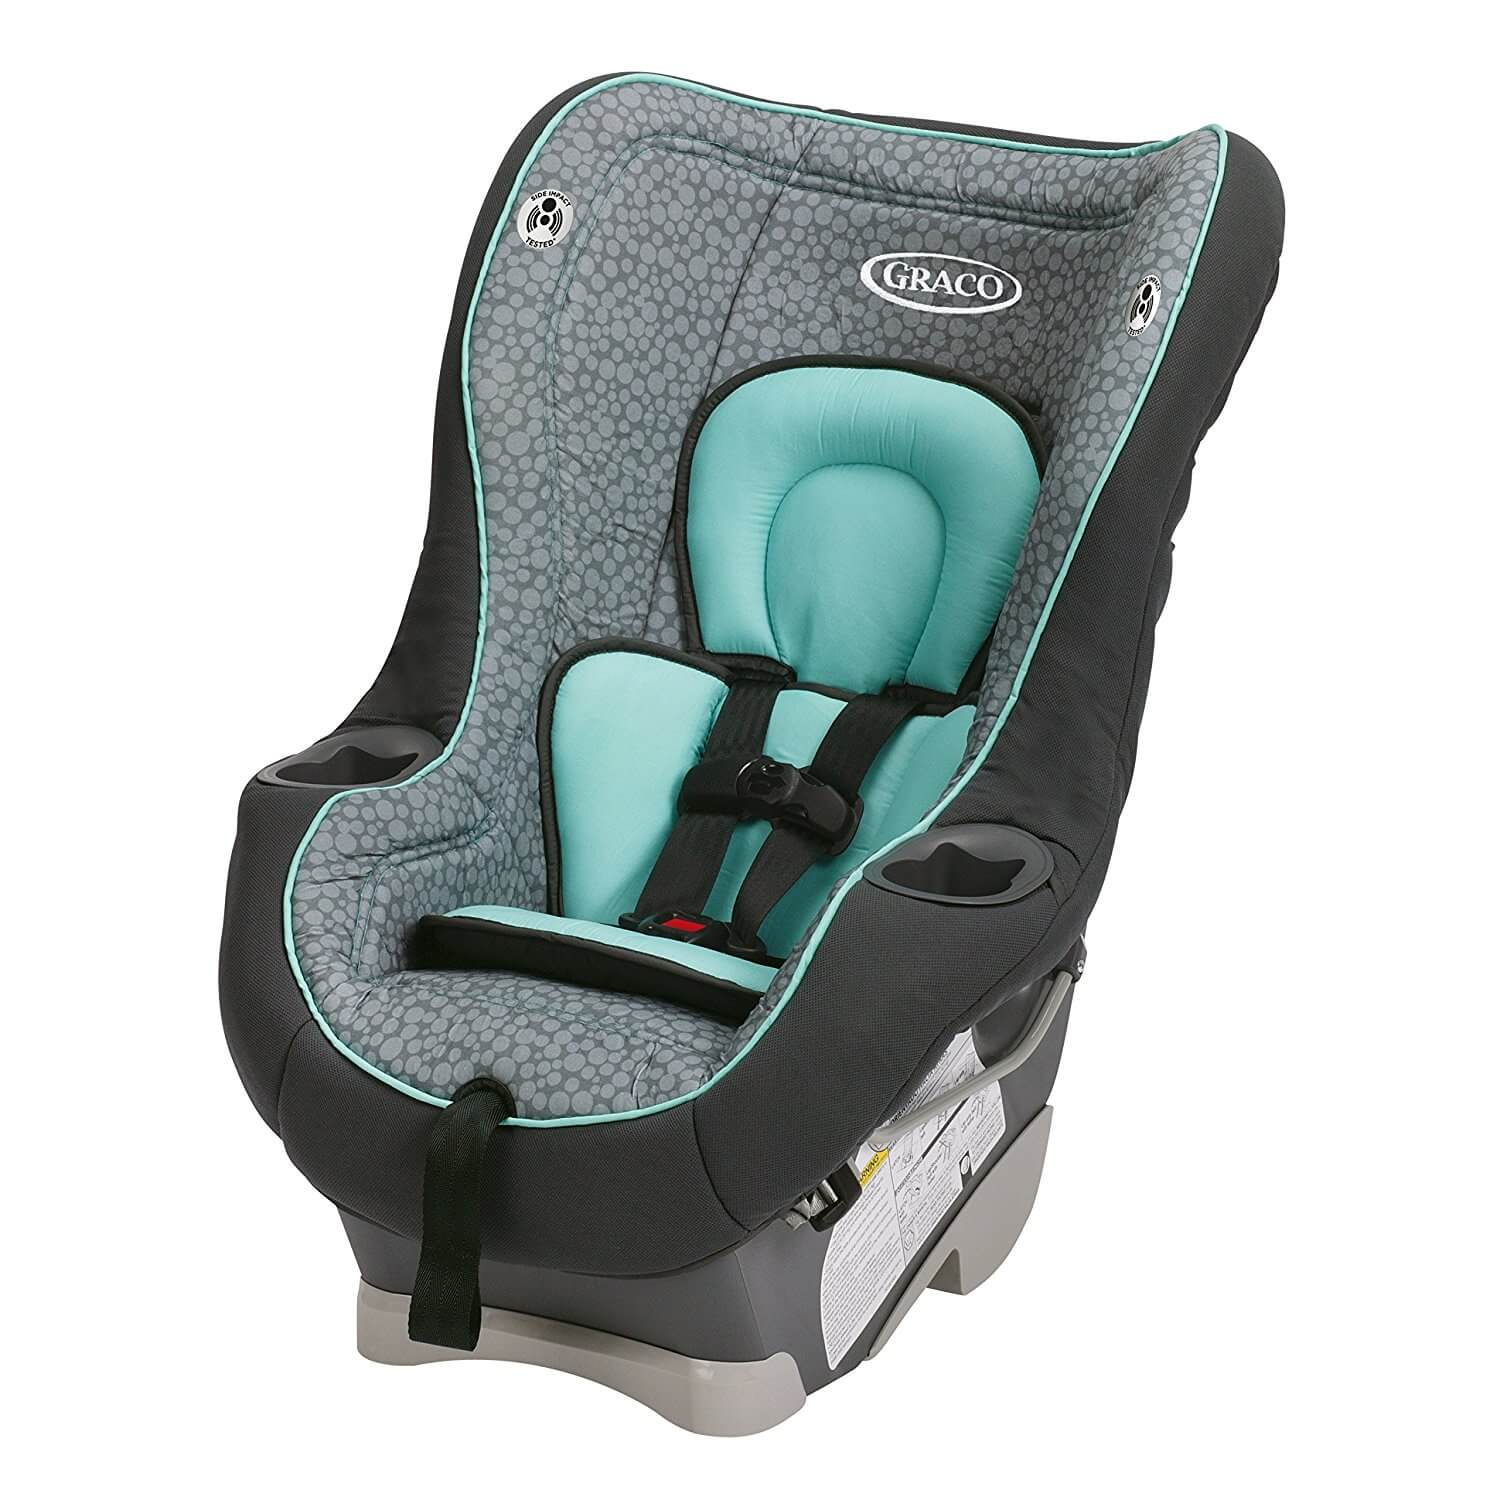 Review For Graco MyRide 65 LX